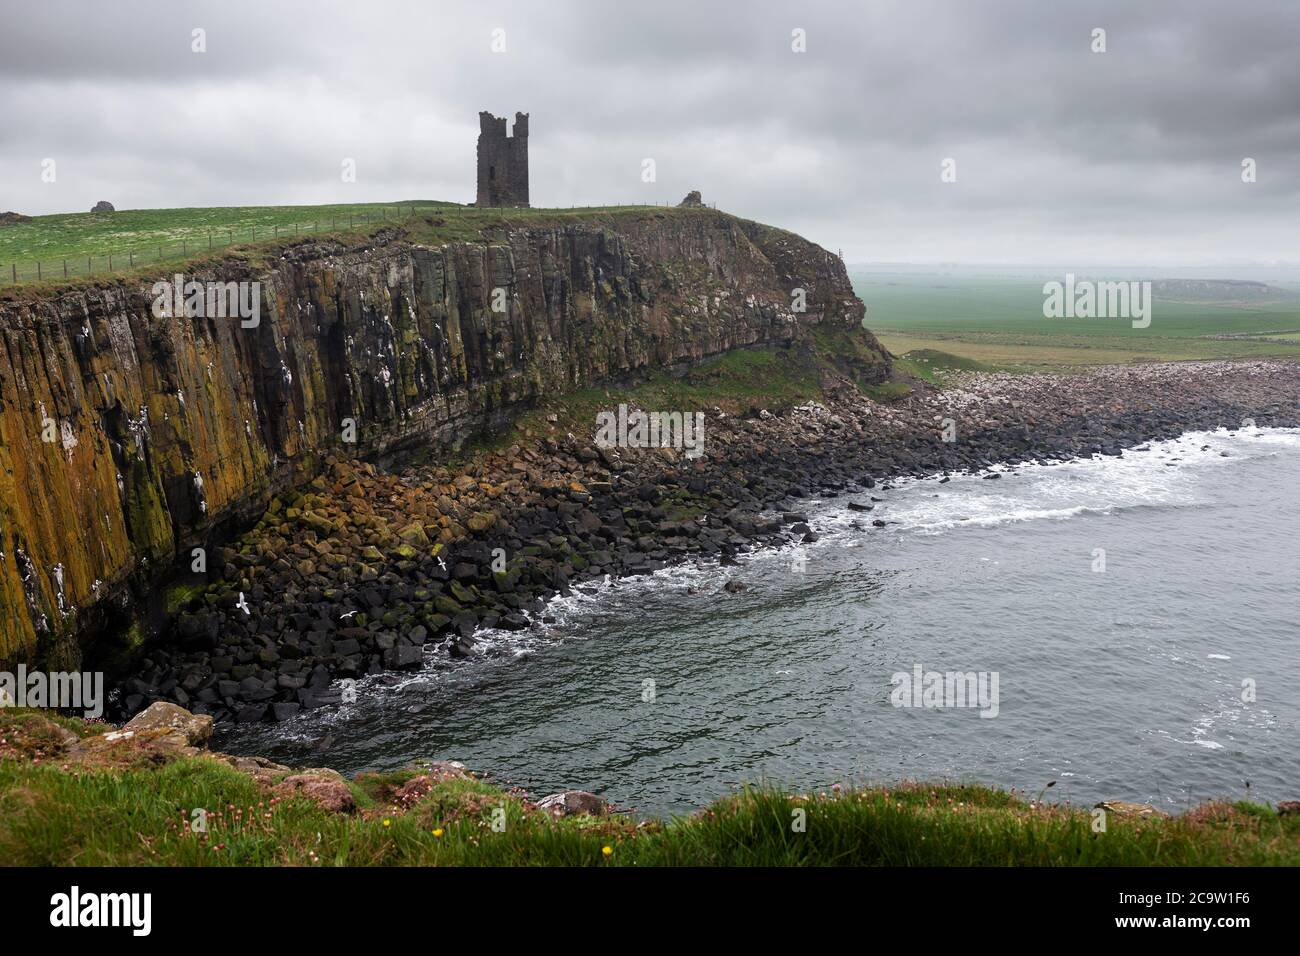 The Gull Crag cliffs and the ruined Lilburn Tower, Dunstanburgh Castle, Northumberland, England, UK, from Castle Point on an overcast, gloomy day Stock Photo